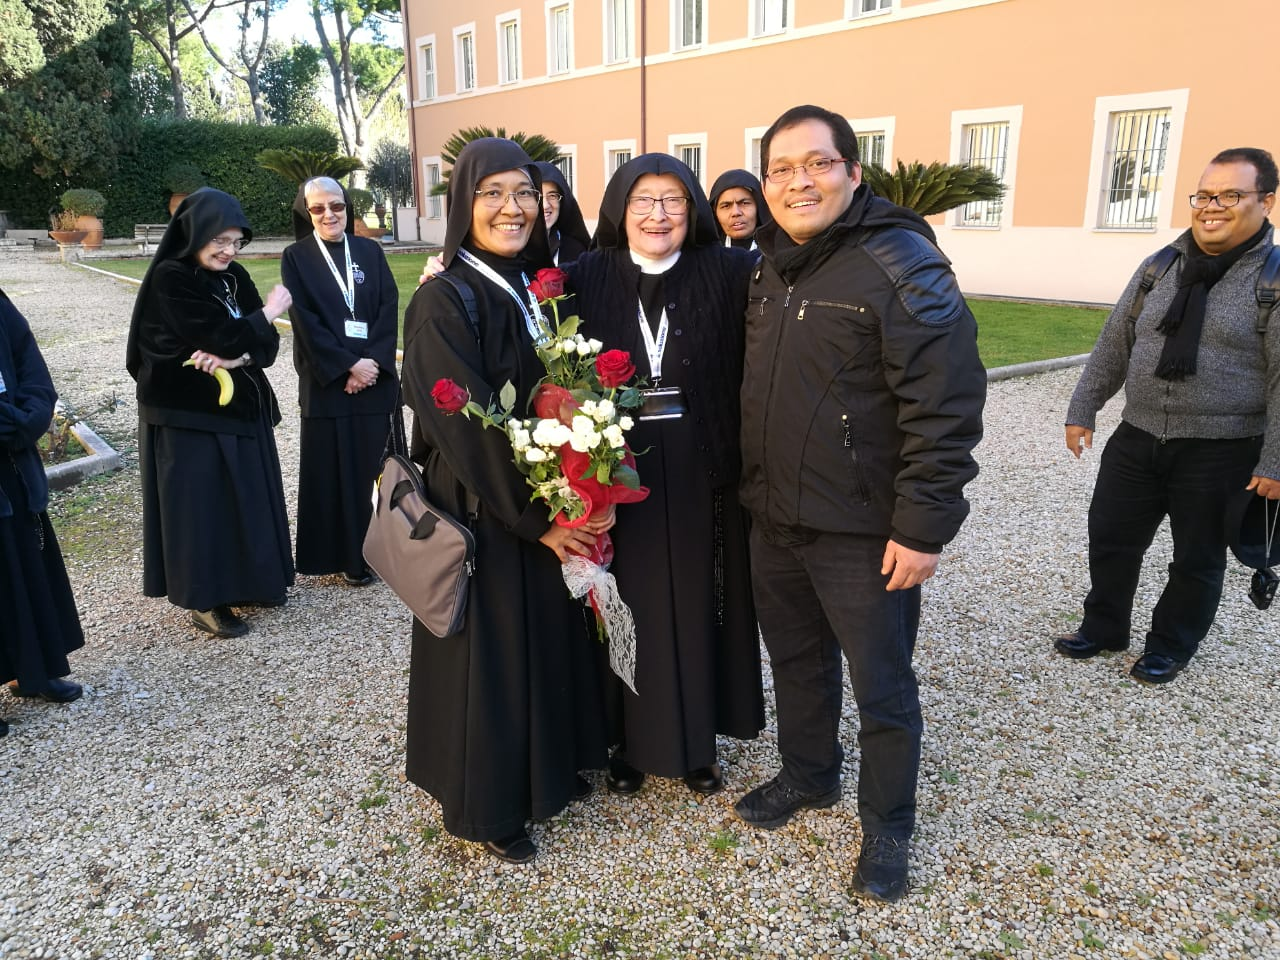 Sr. Martina Naiman, general councilor, with Mother Catherine Marie and Sr. Martina's brother, Fr. Mikael, CP